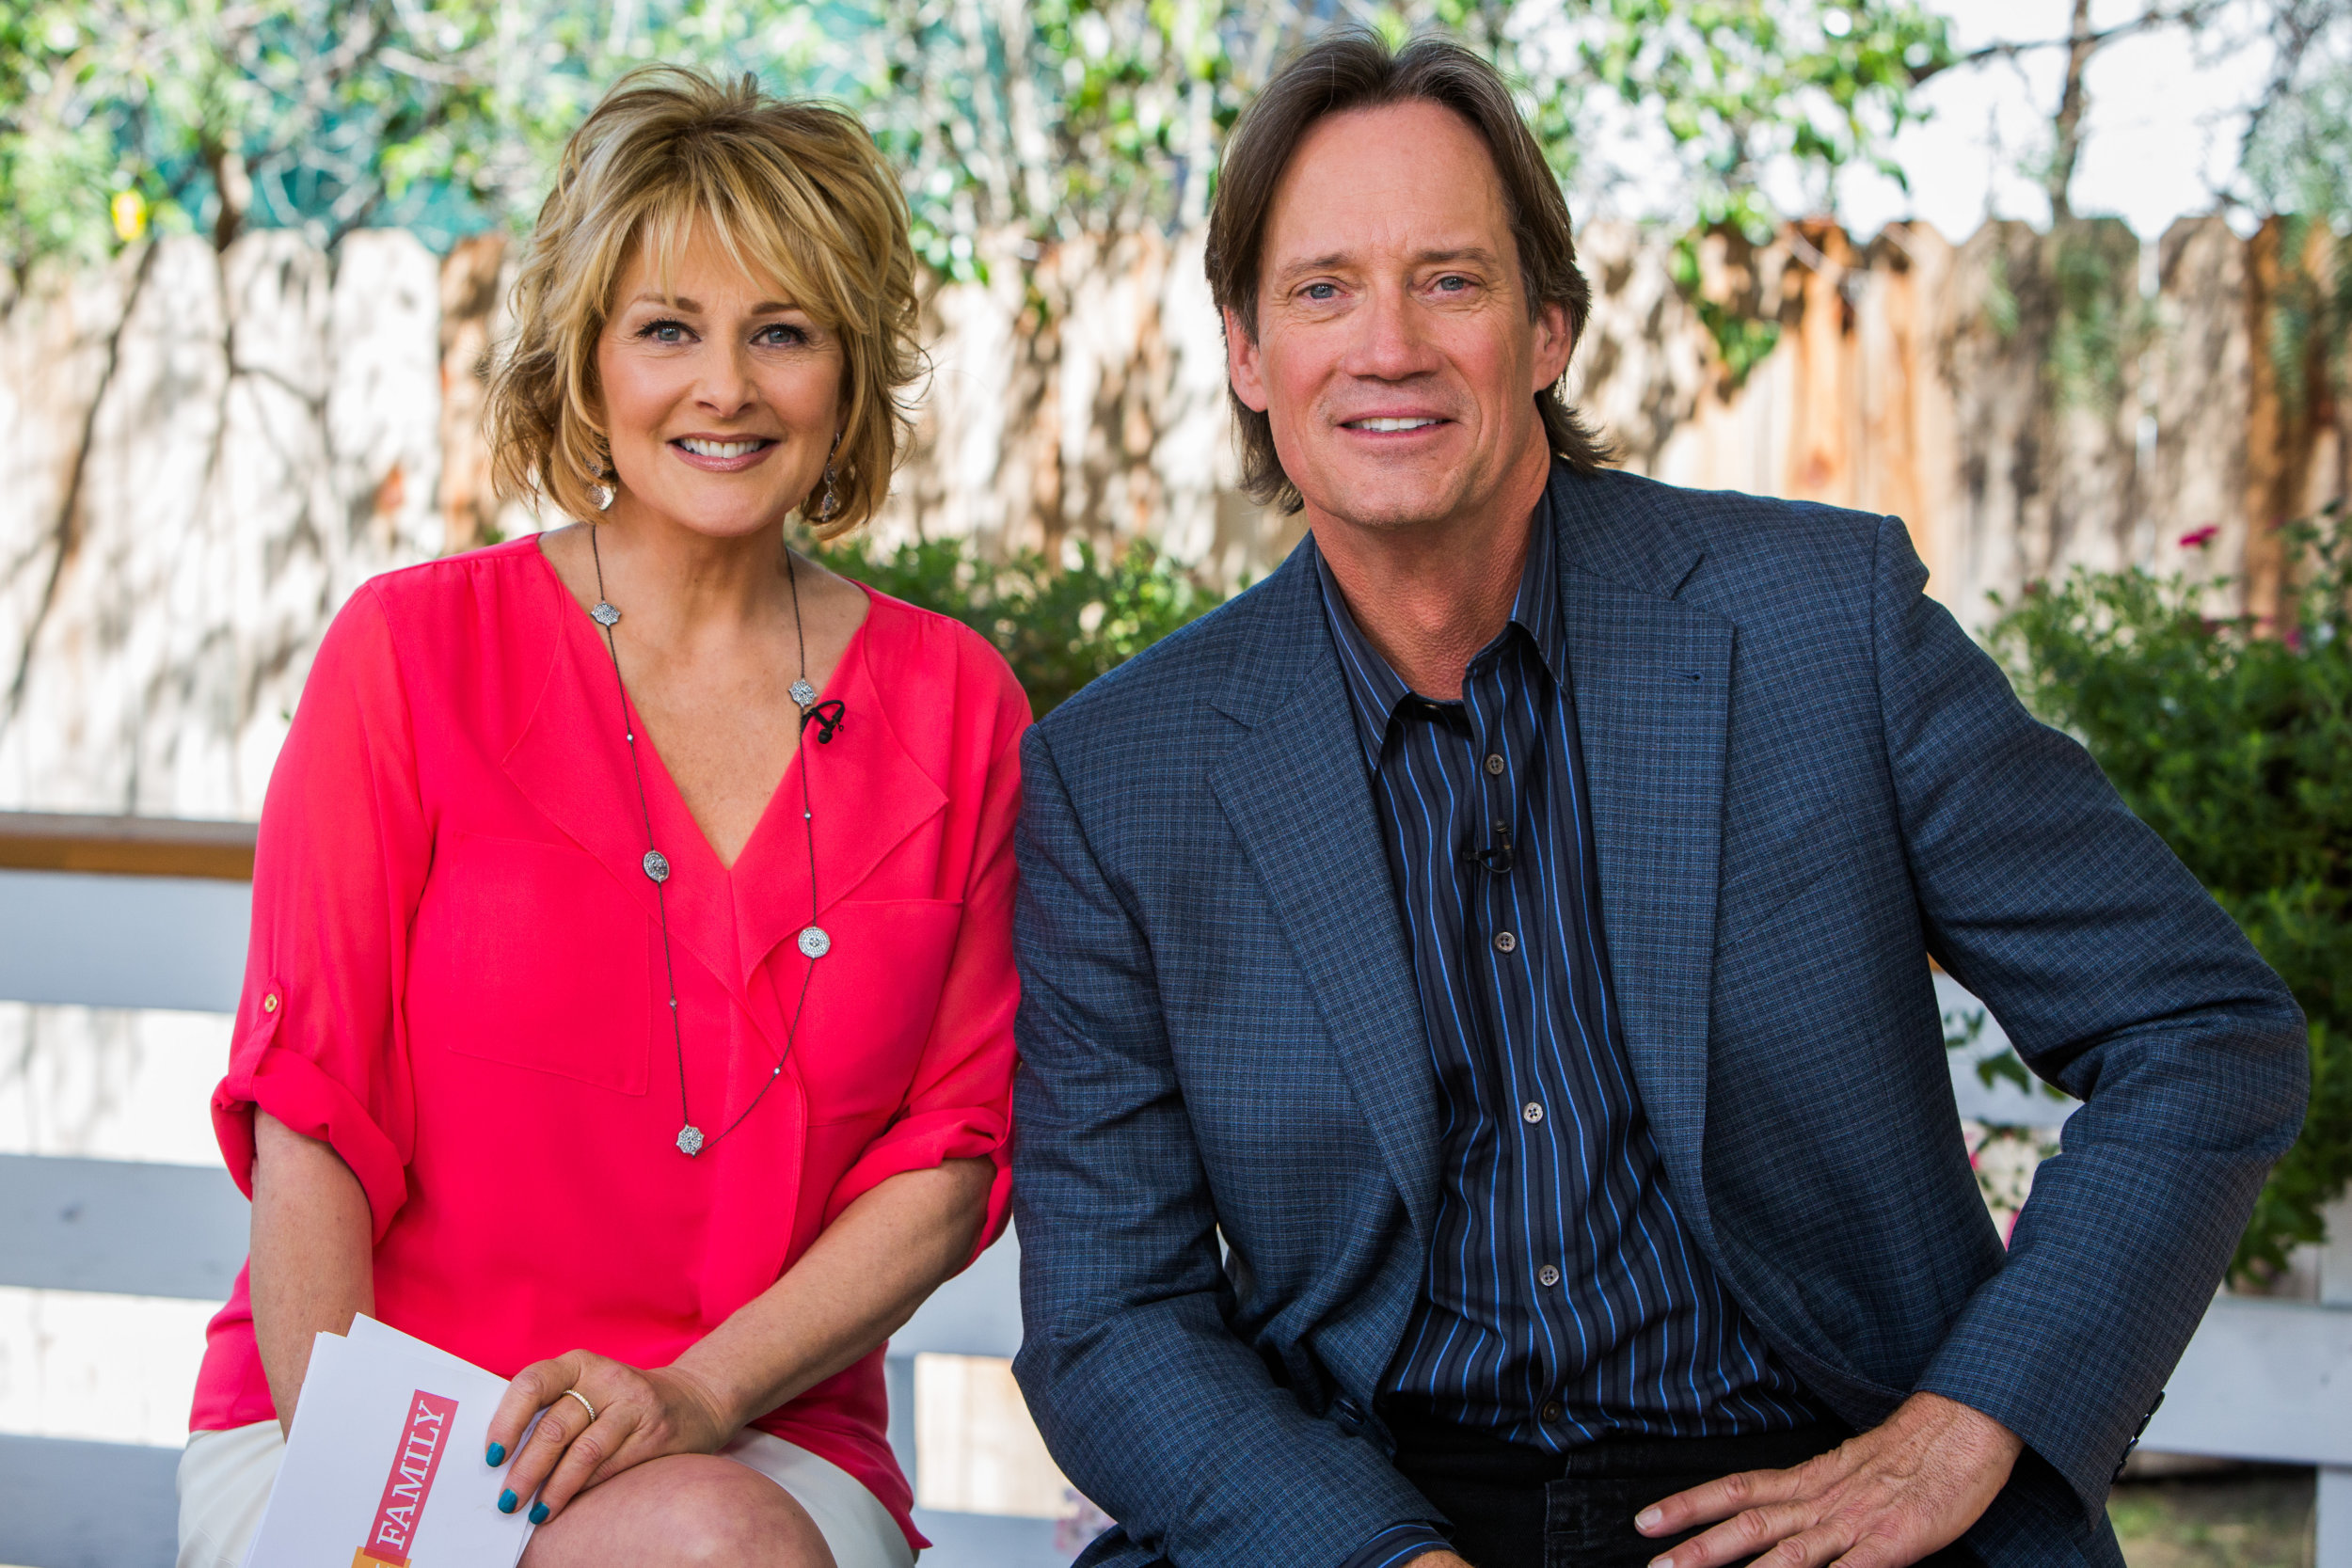 Wednesday March 25th 2015 Home Amp Family Hallmark Channel